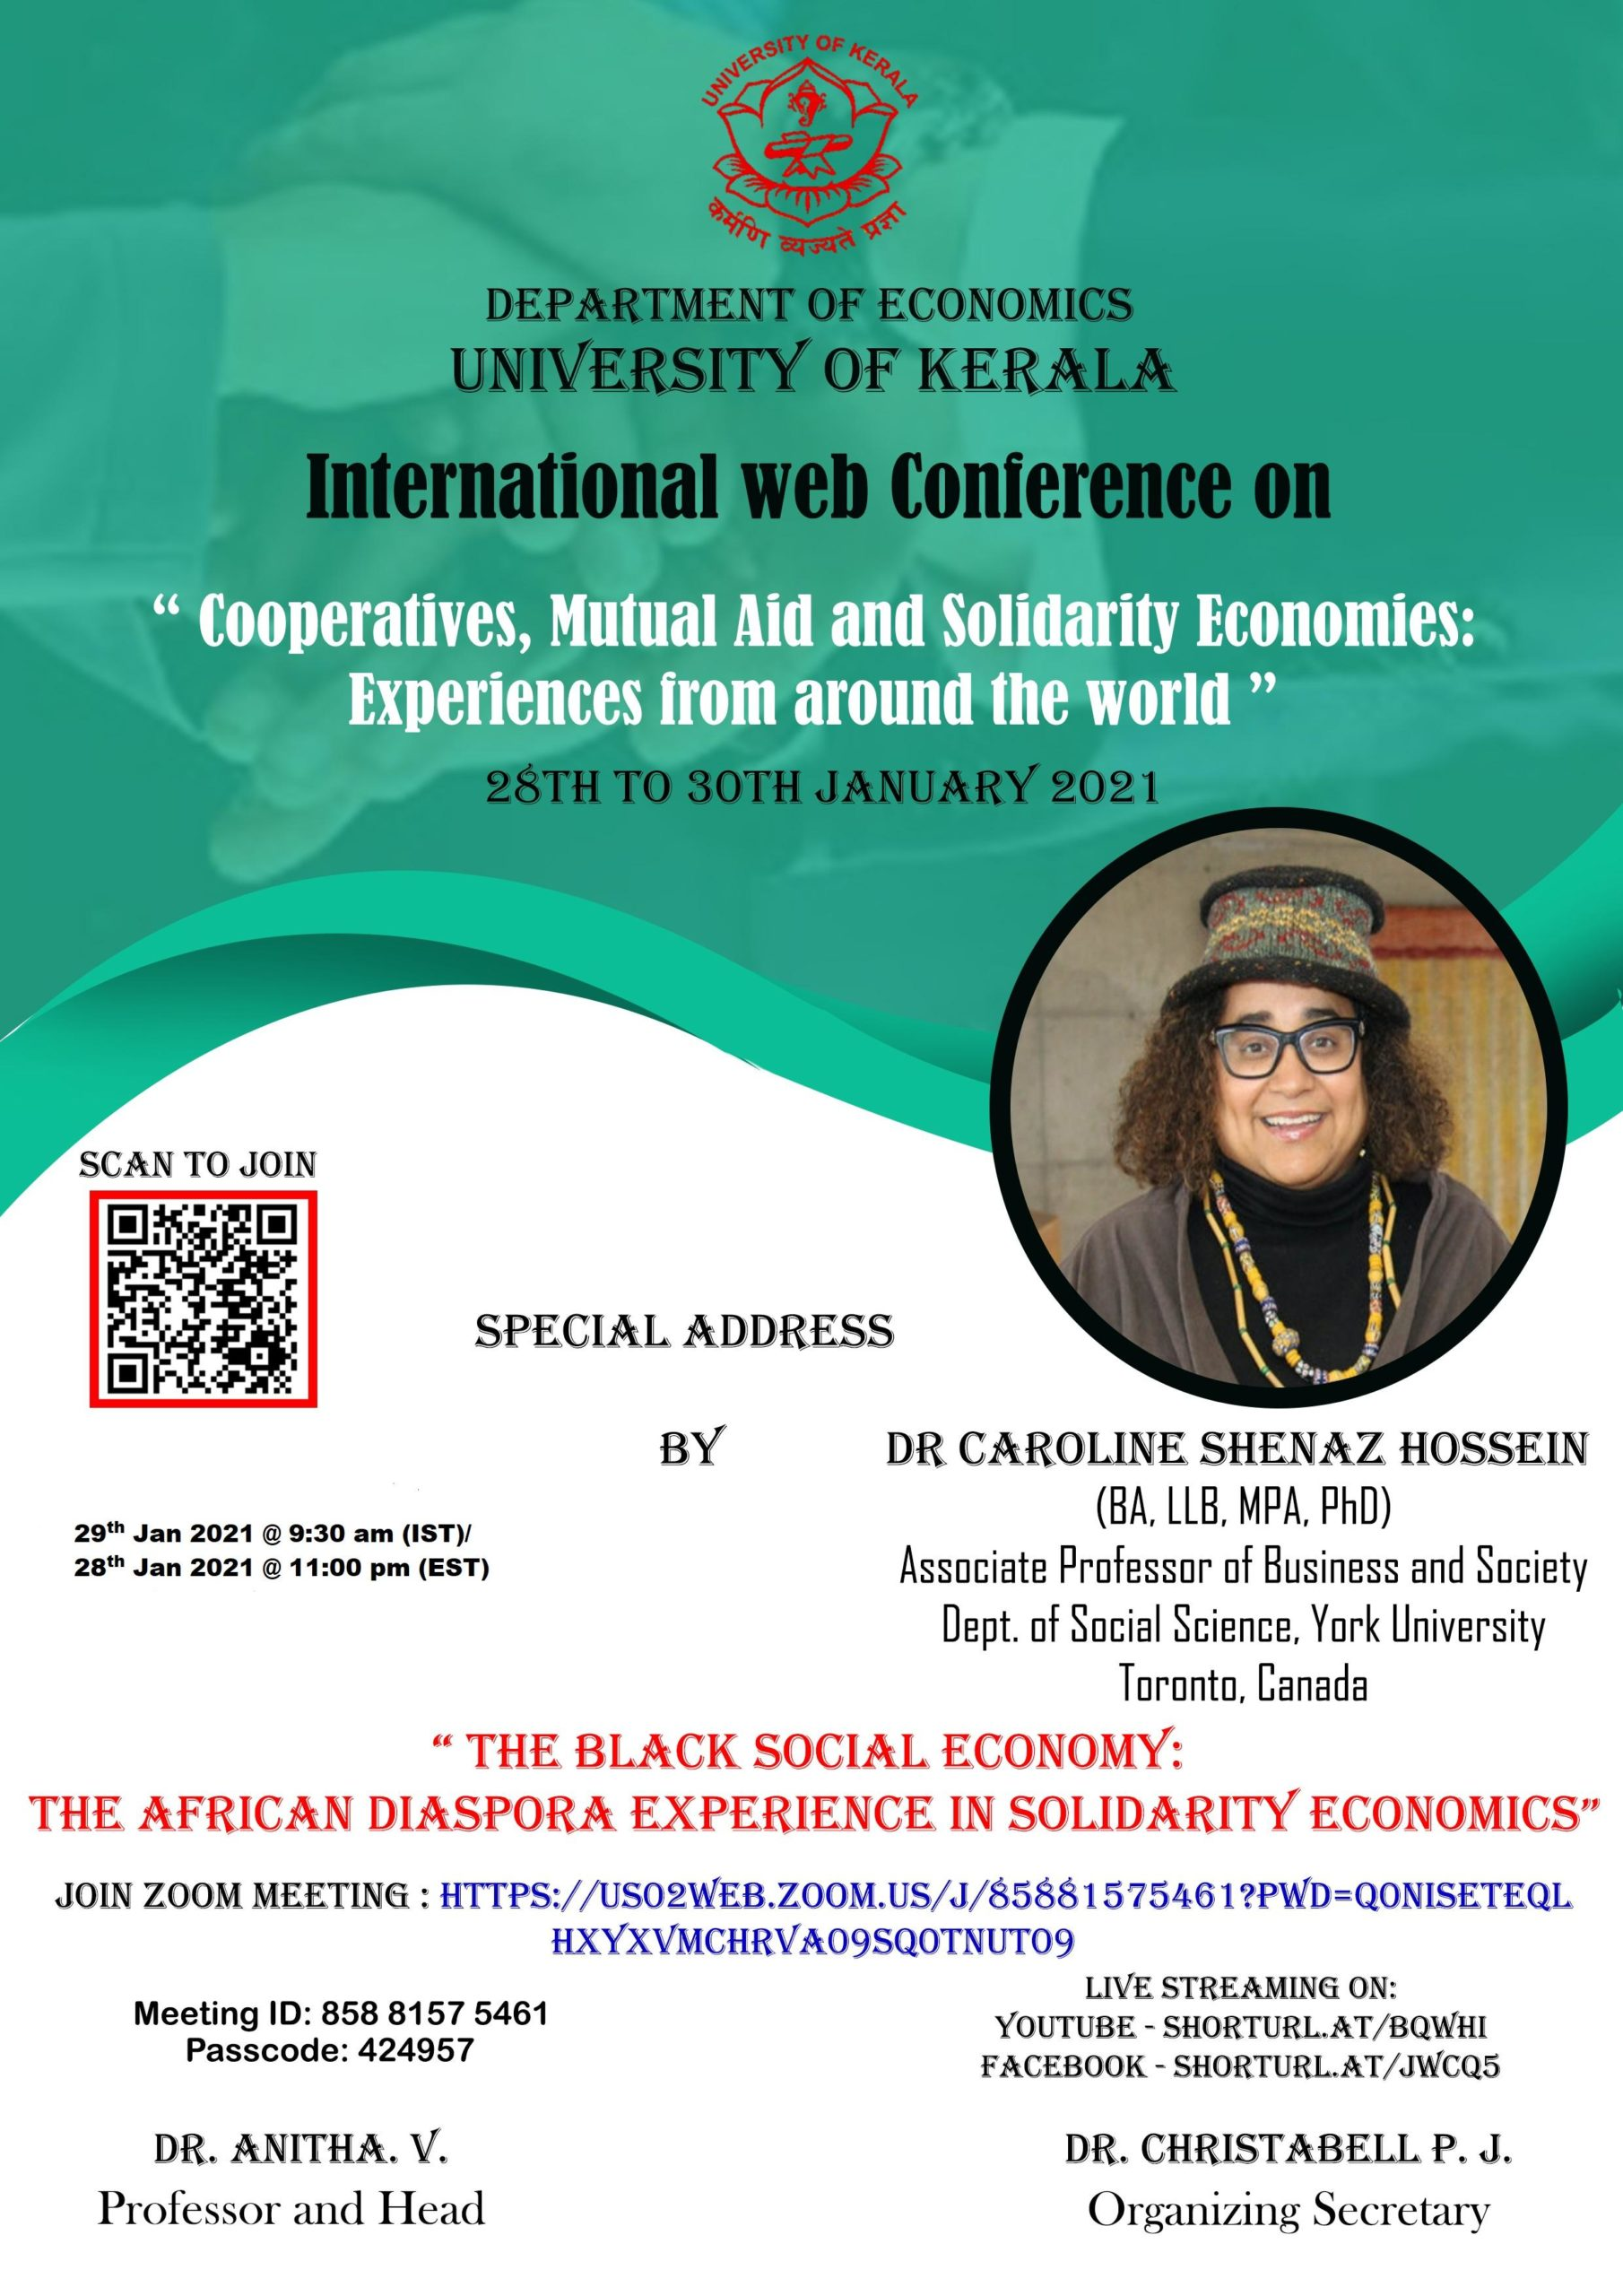 Poster for The Black Social Economy: The African Diaspora Experience in Solidarity Economics - a special address by Dr. Caroline Shenaz Hossein